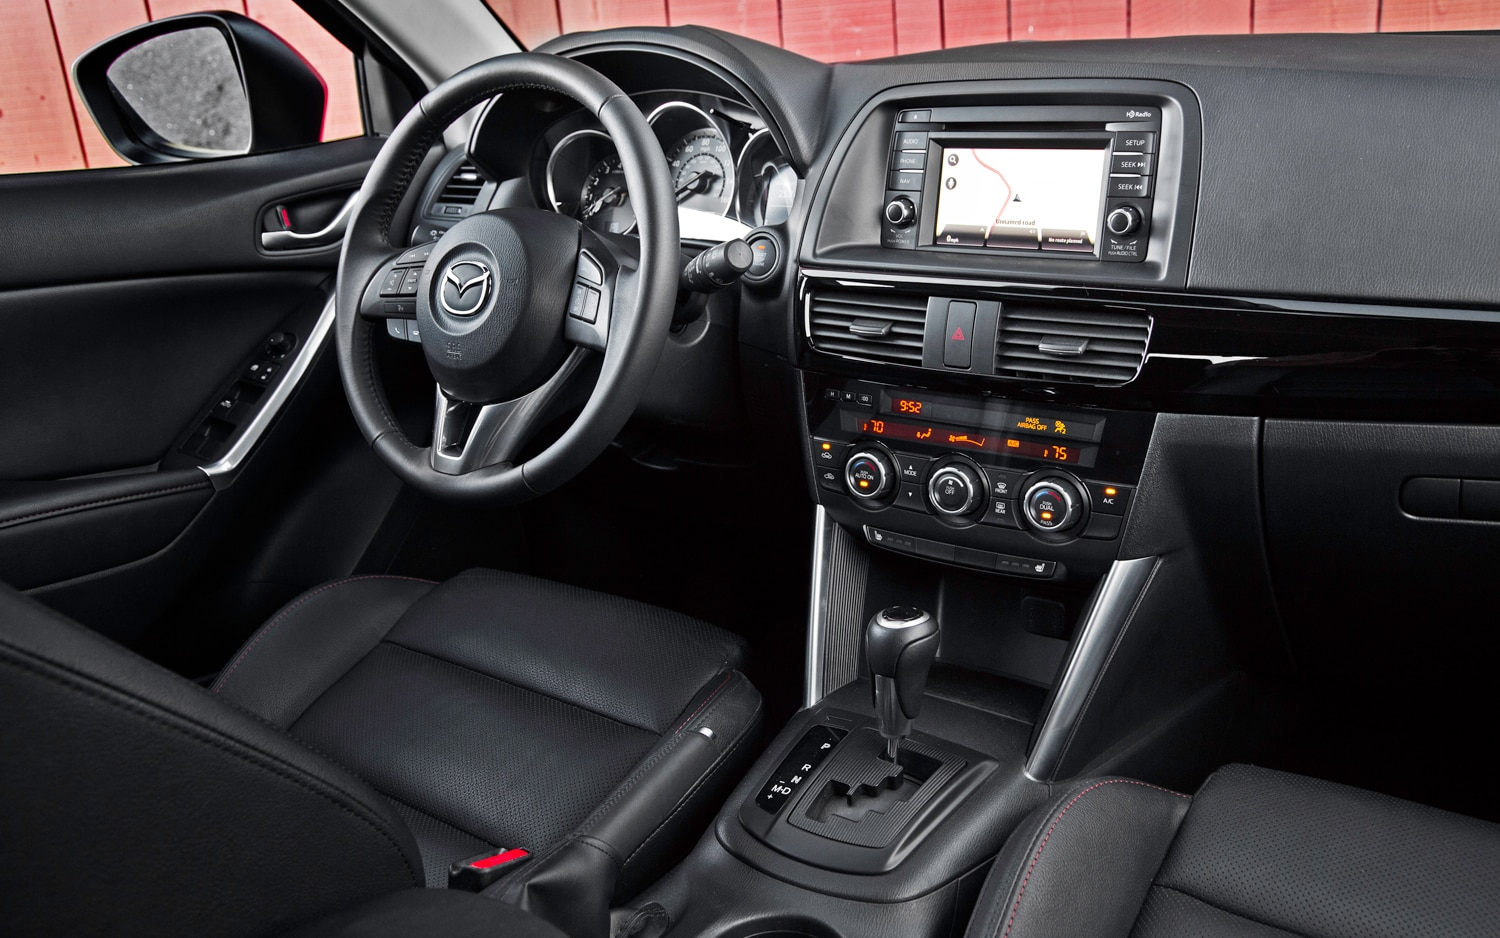 2014 mazda cx 5 grand touring interior motor trend en espa ol. Black Bedroom Furniture Sets. Home Design Ideas